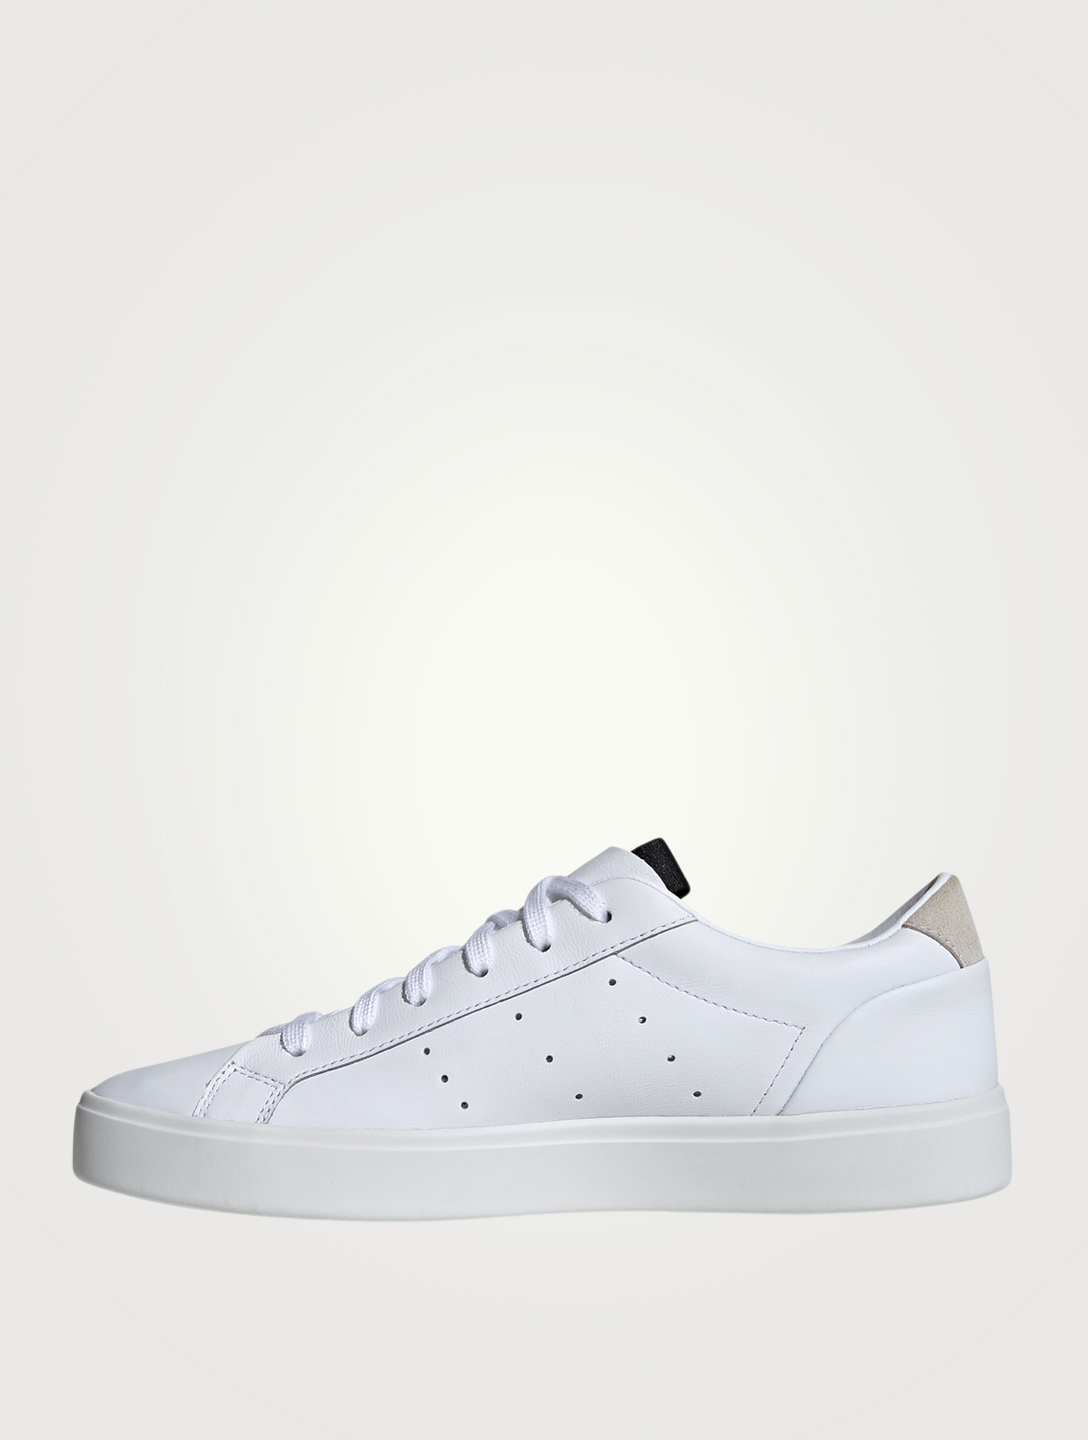 ADIDAS Sleek Leather Sneakers Women's White